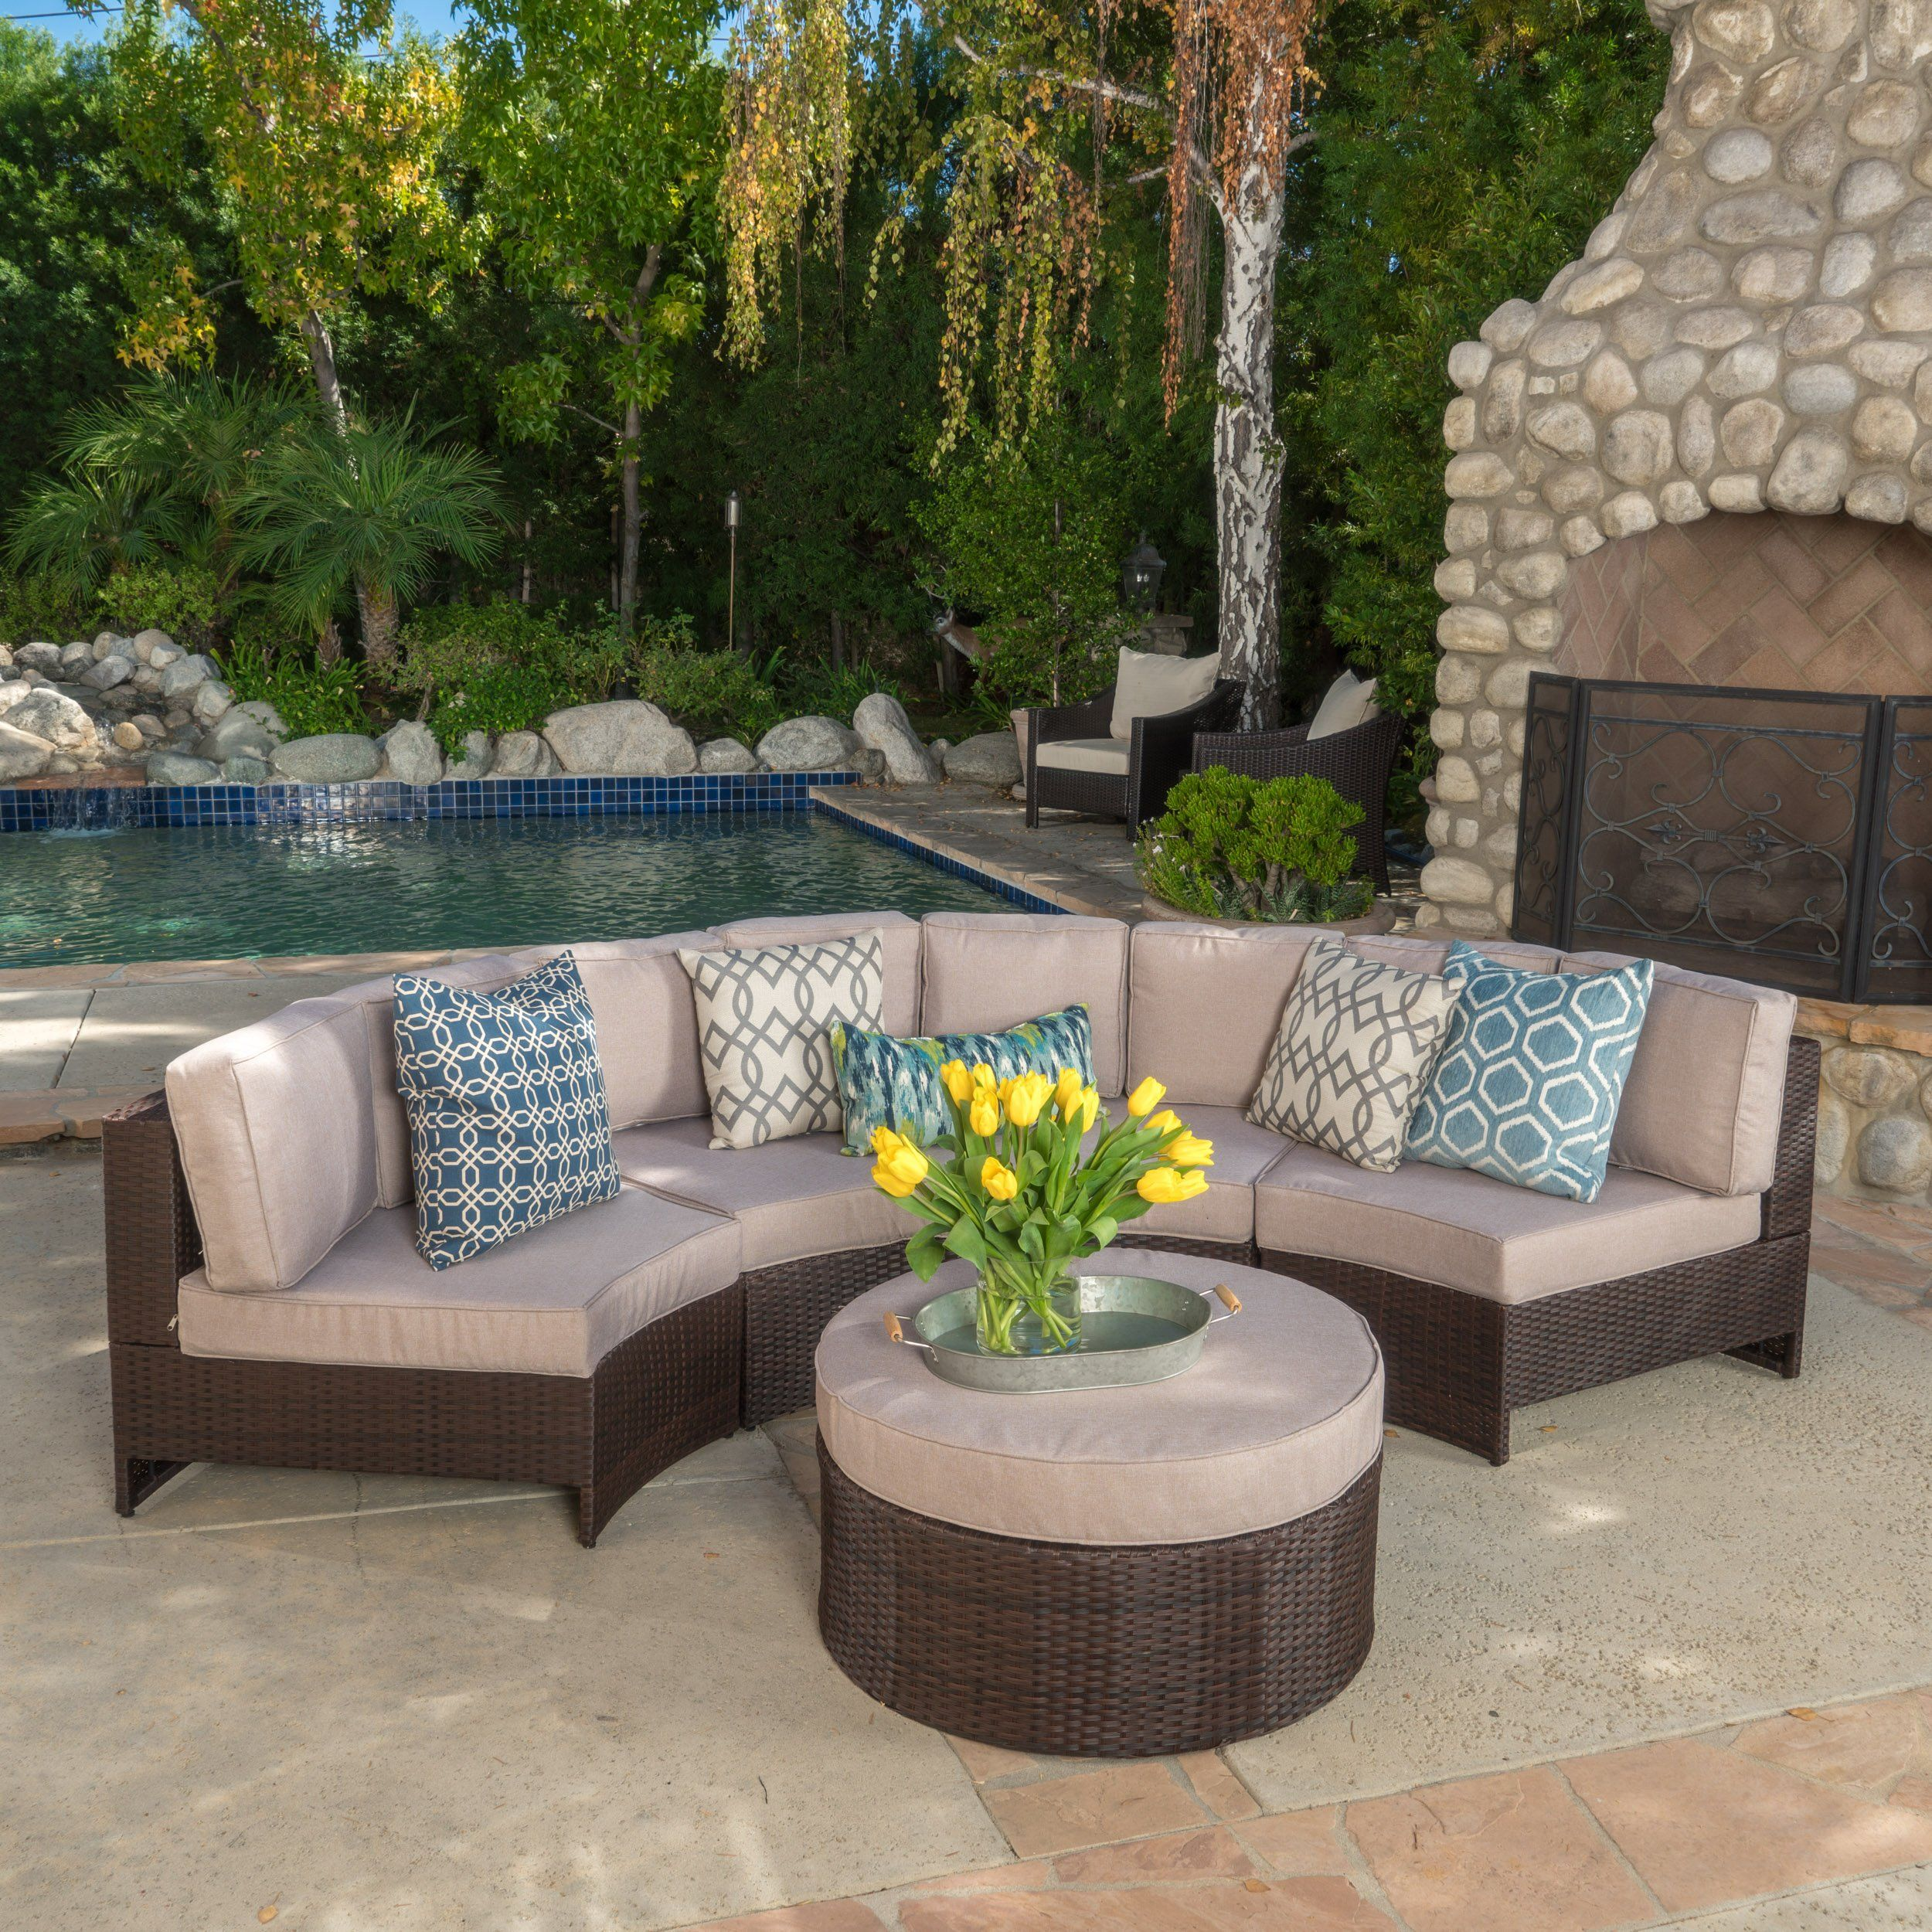 Exceptionnel Riviera Ponza 5 Piece Outdoor Wicker Patio Furniture Semicircular Sectional  Sofa Seating Set W/ Waterproof